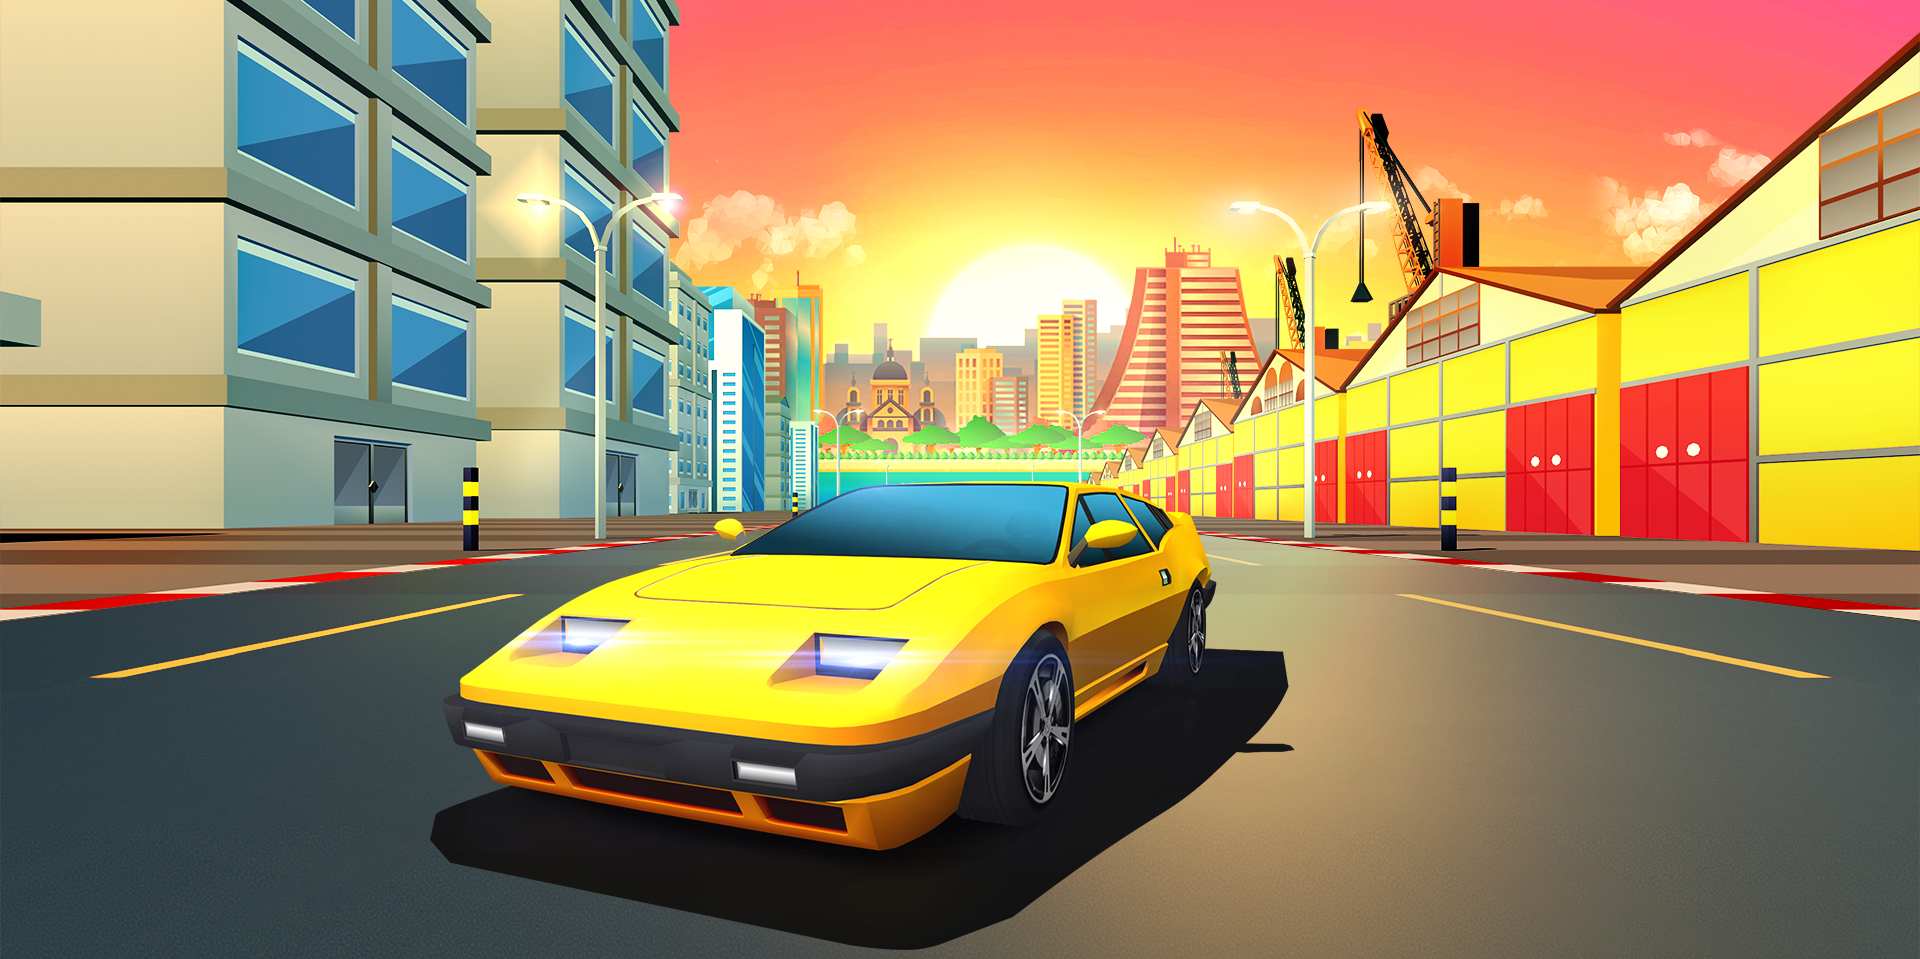 Horizon Chase Turbo and World Tour receive celebratory updates featuring new tracks, skins, and more